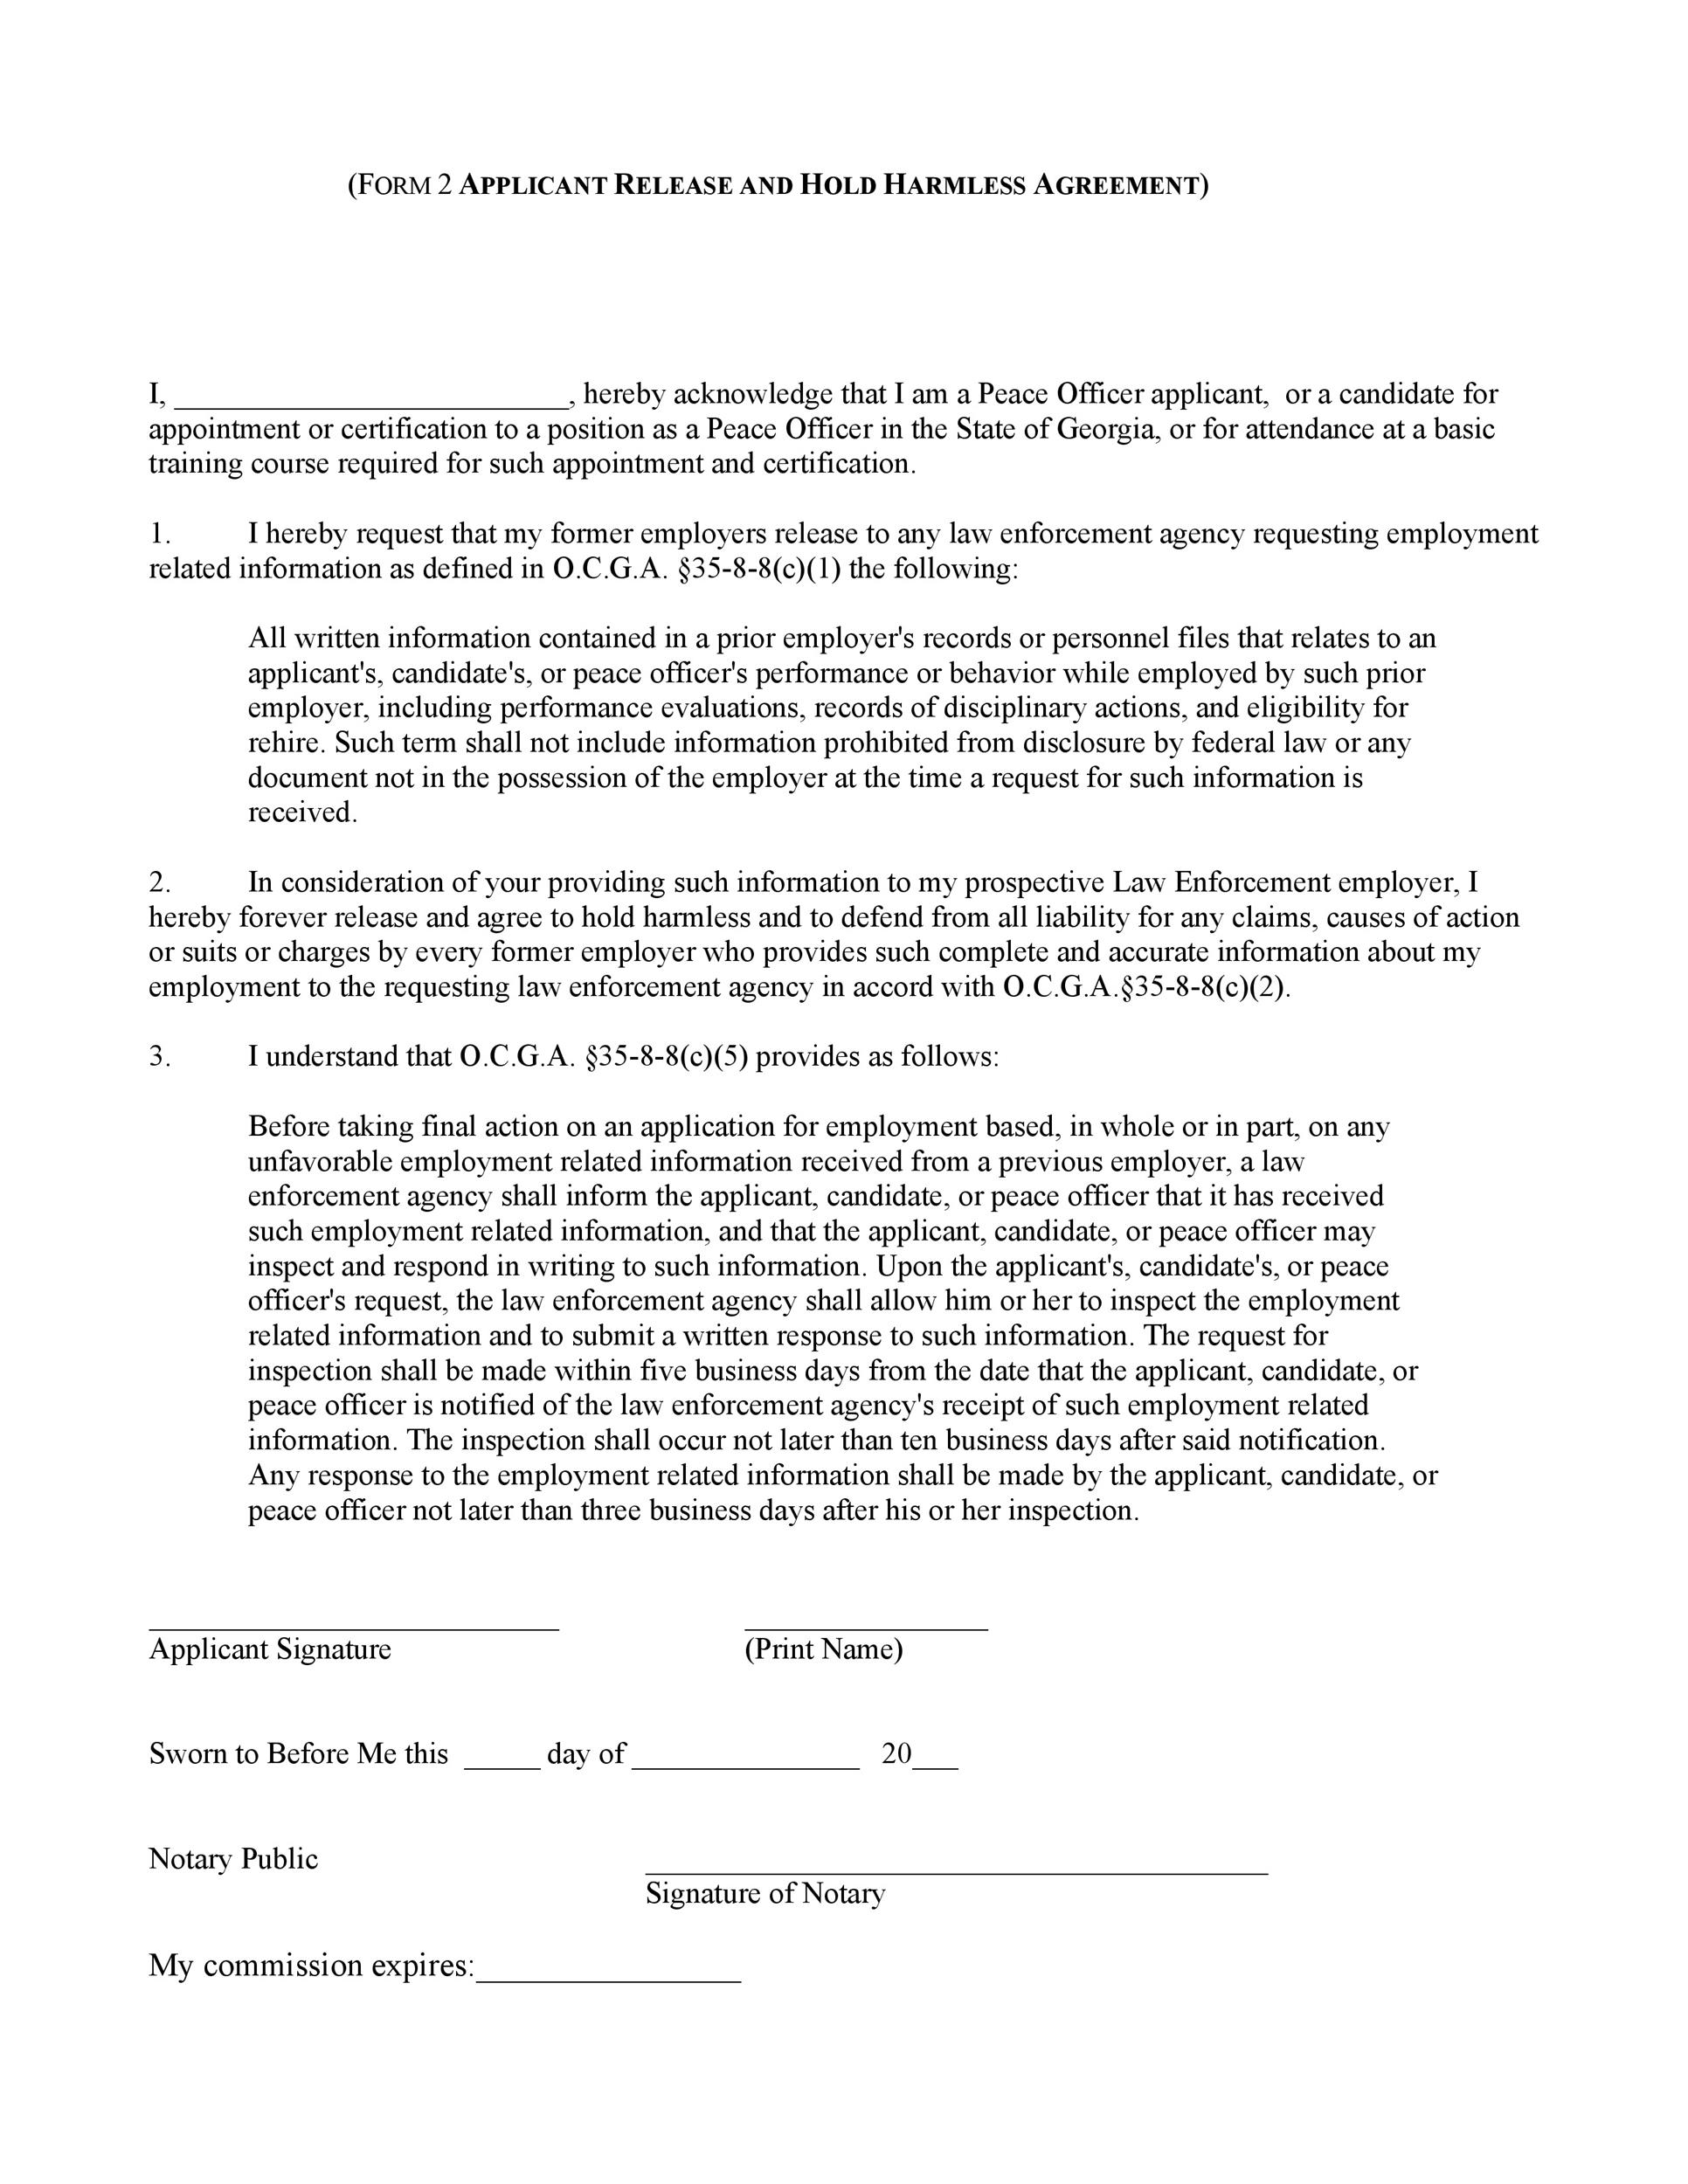 40+ Hold Harmless Agreement Templates (Free) - Template Lab